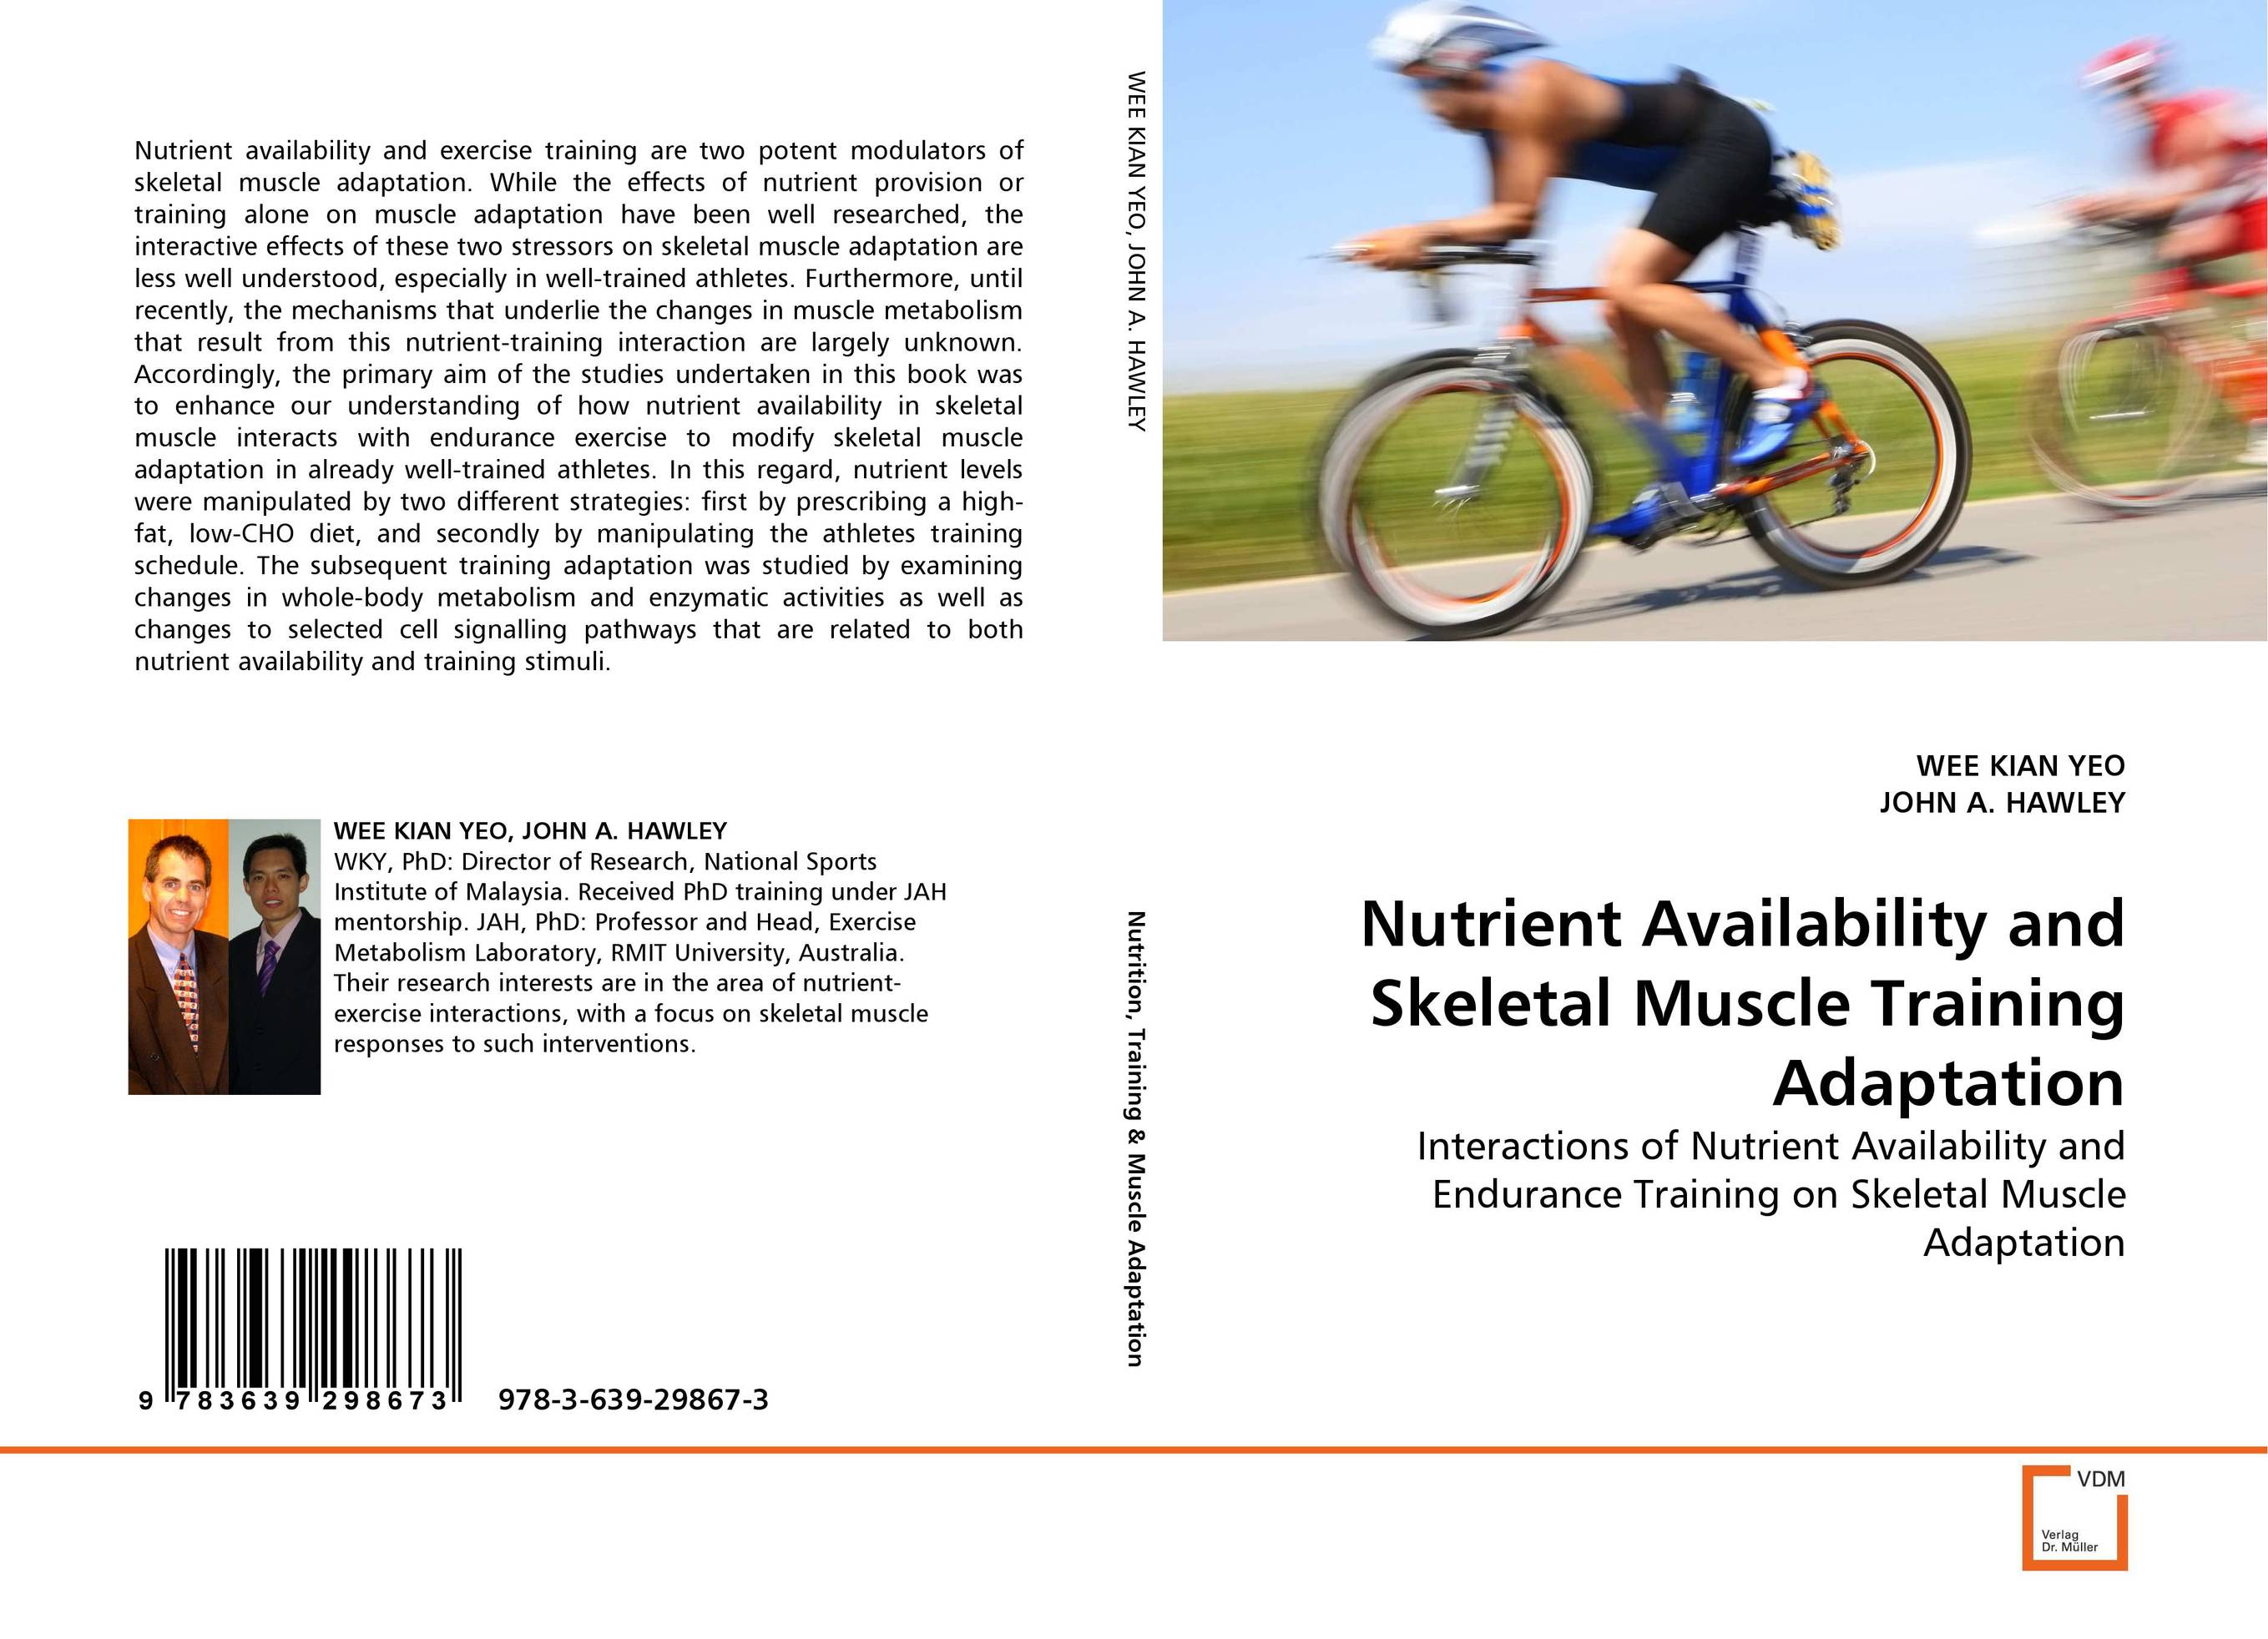 Nutrient Availability and Skeletal Muscle Training Adaptation fluorides and non skeletal fluorosis